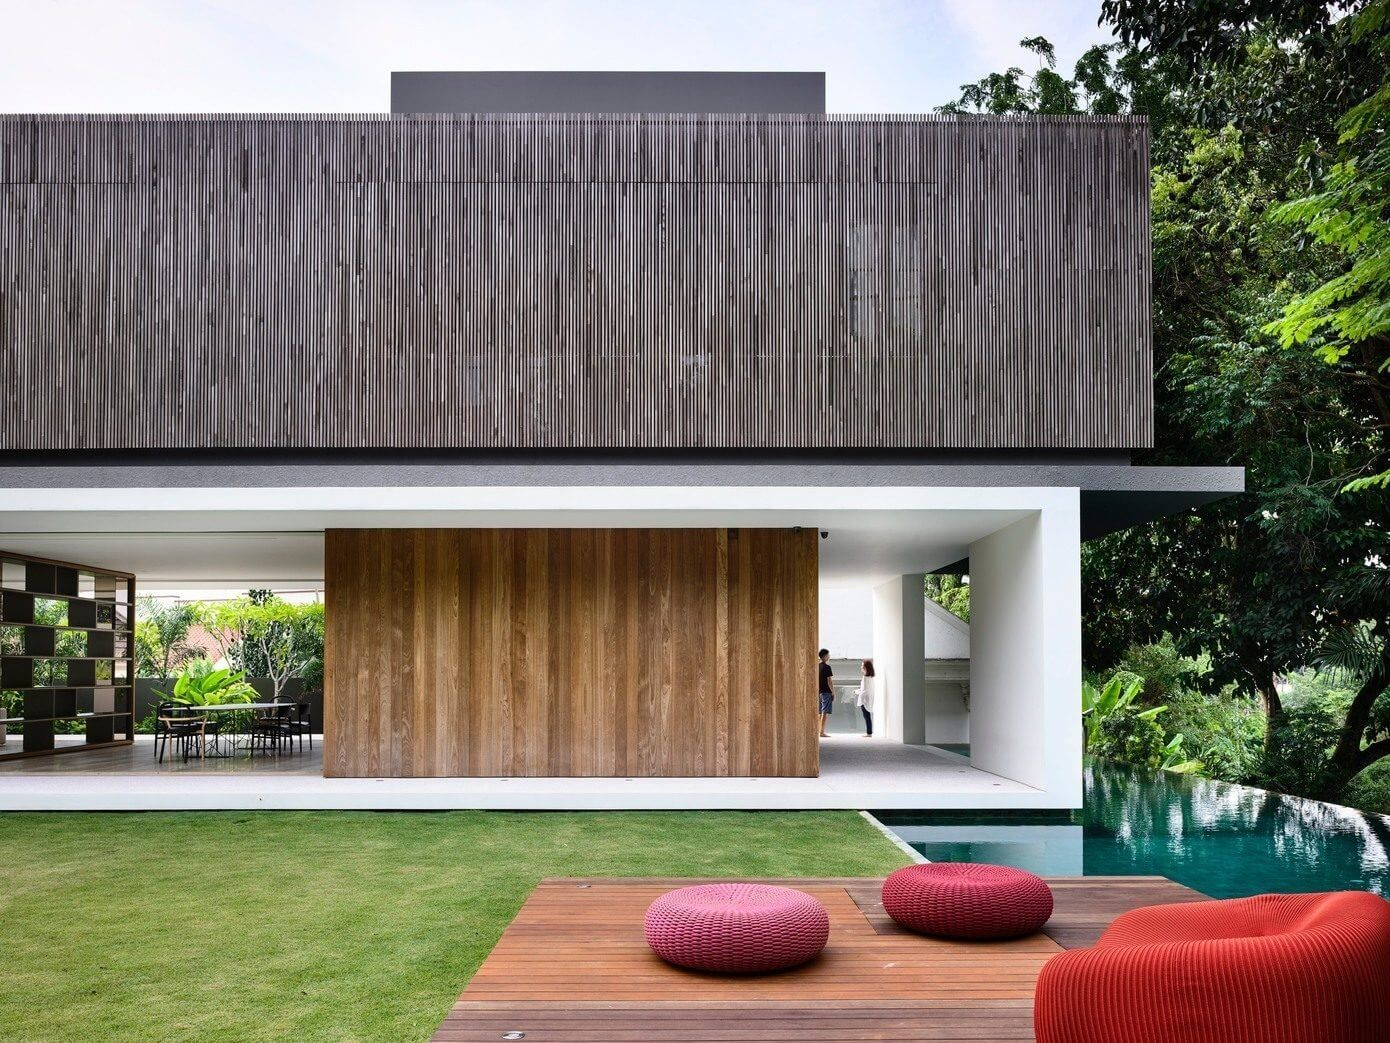 KAP-House by ONG&ONG   MAPPS BEAMS, COLUMNS AND DESIGN   Pinterest ...